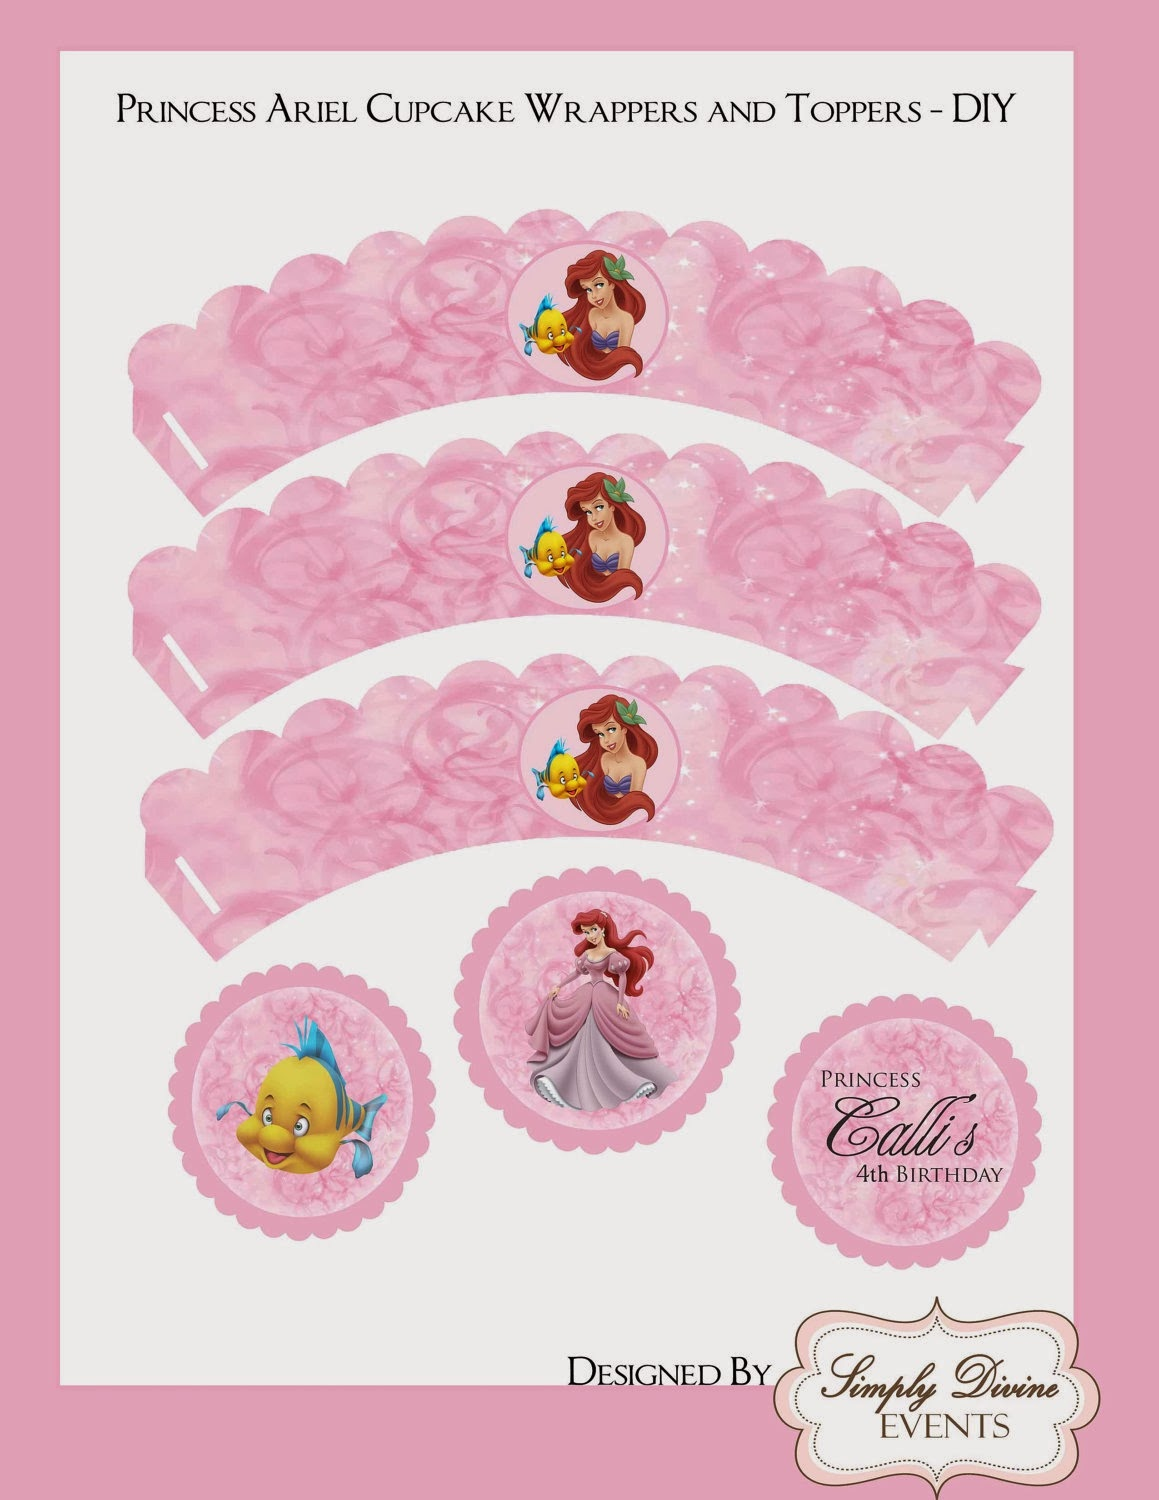 Little Mermaid Free Printable Wrappers And Toppers. - Oh My Fiesta - Free Printable Mermaid Cupcake Toppers